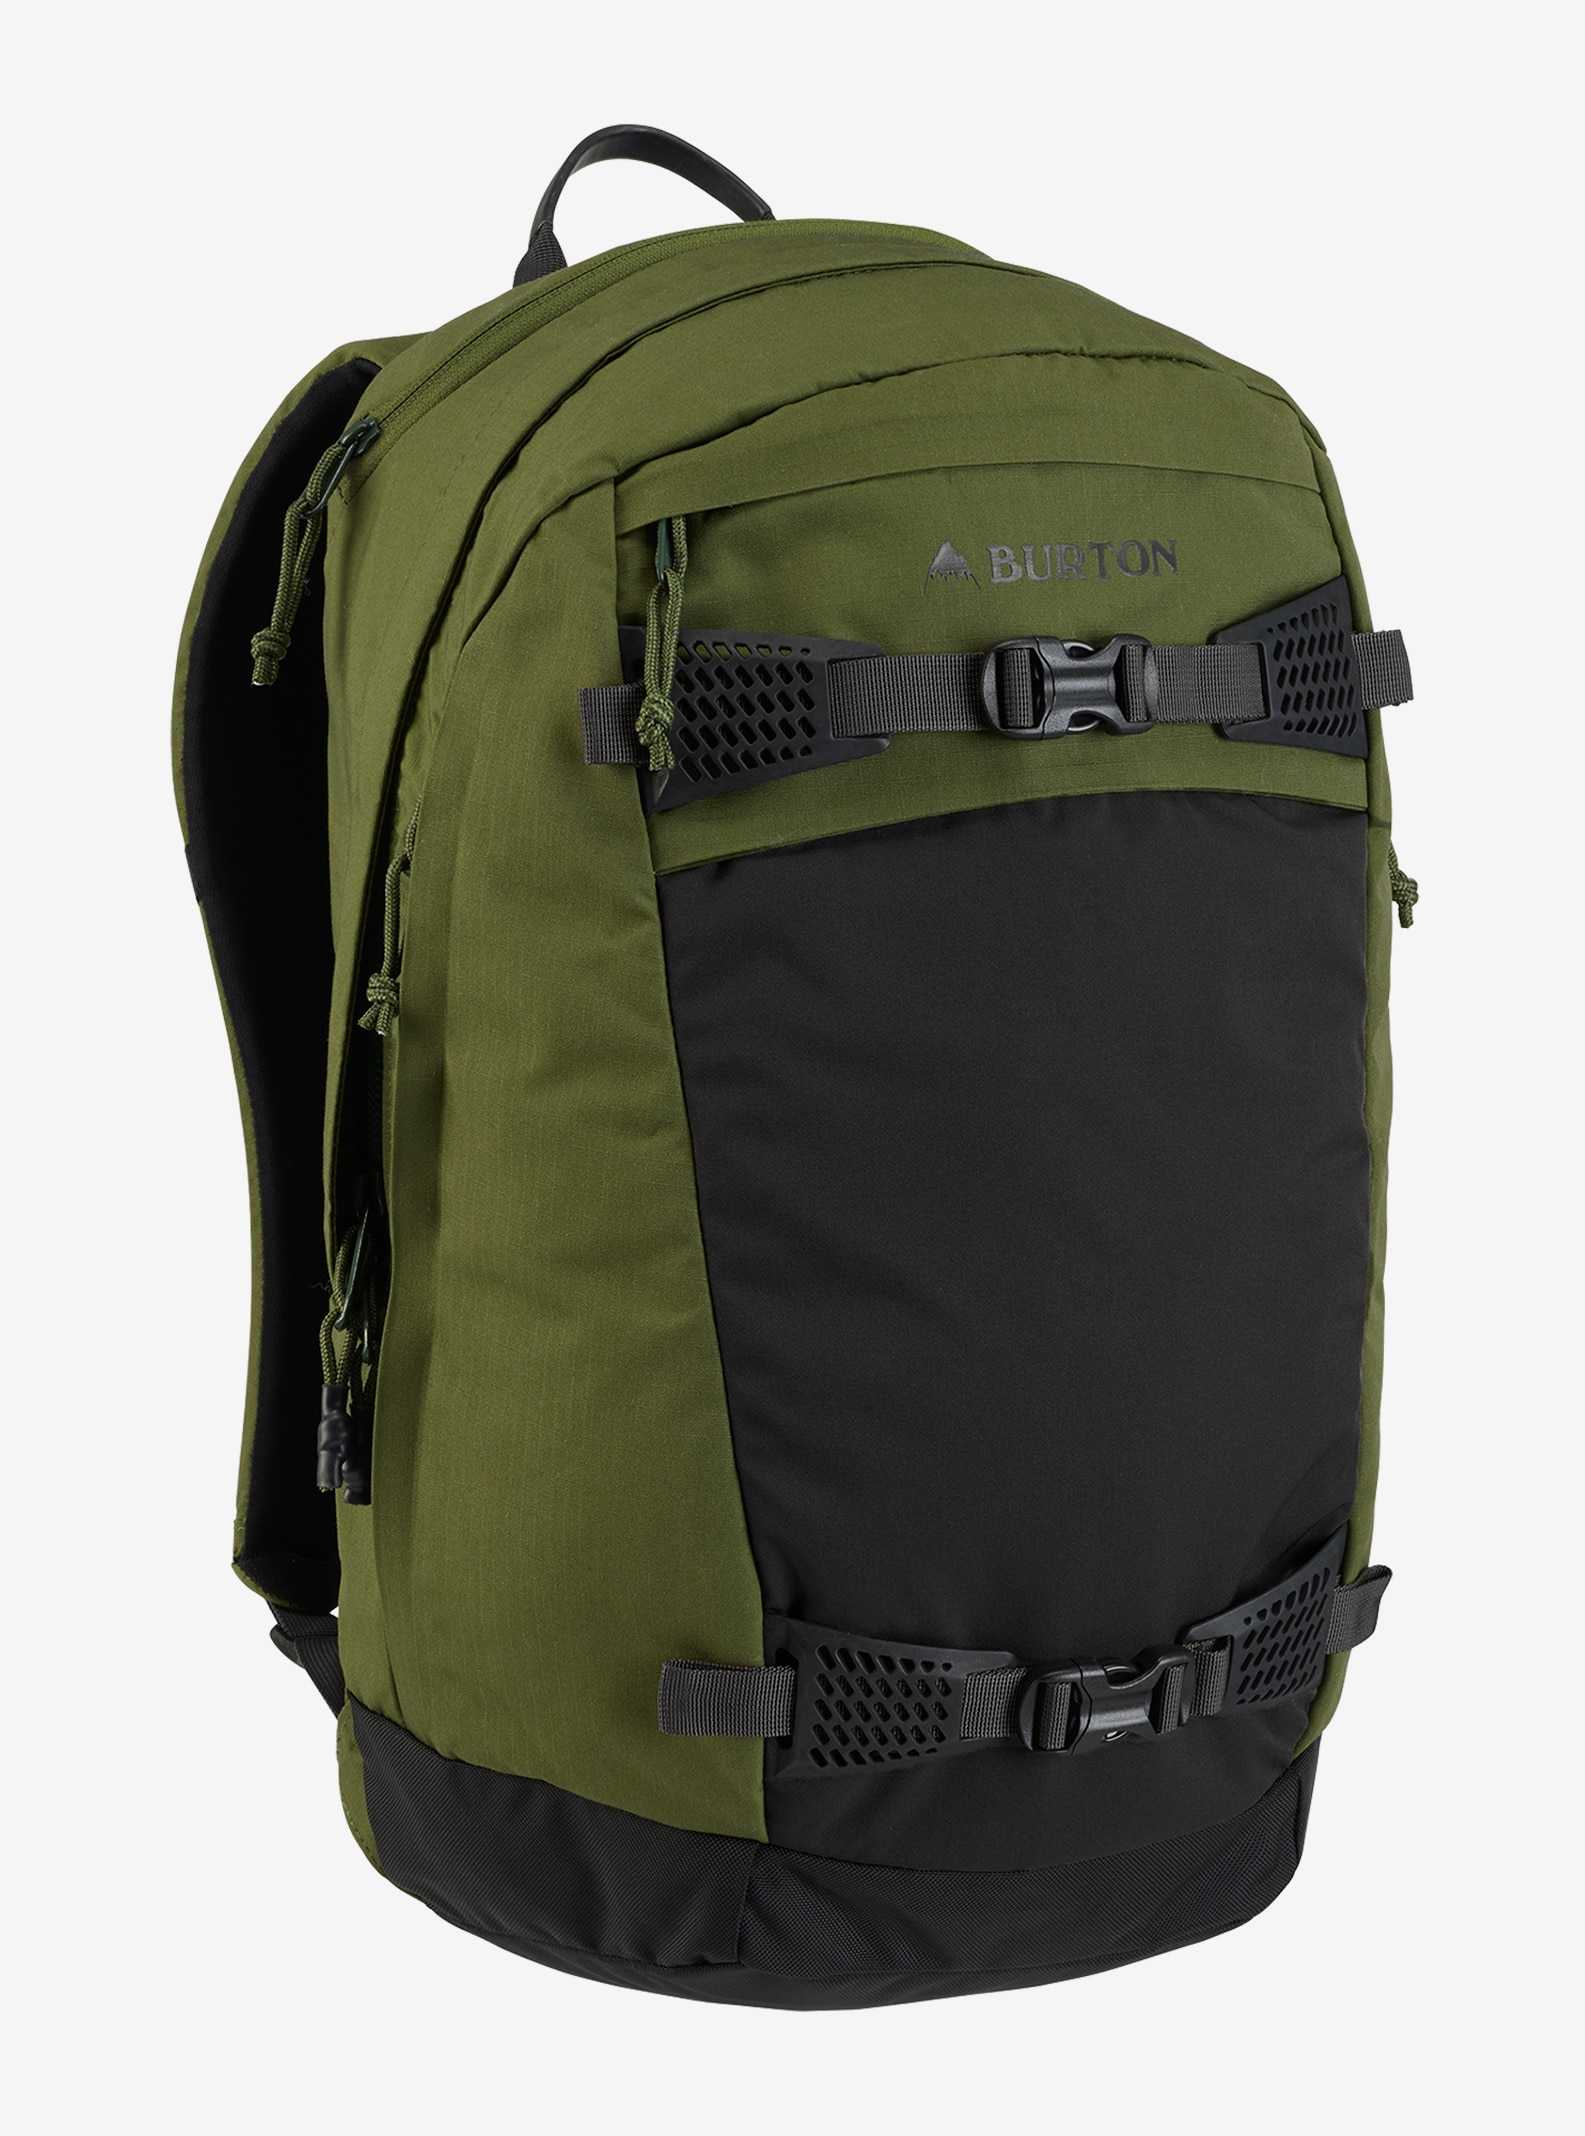 Burton Day Hiker 28L Backpack shown in Rifle Green Ripstop